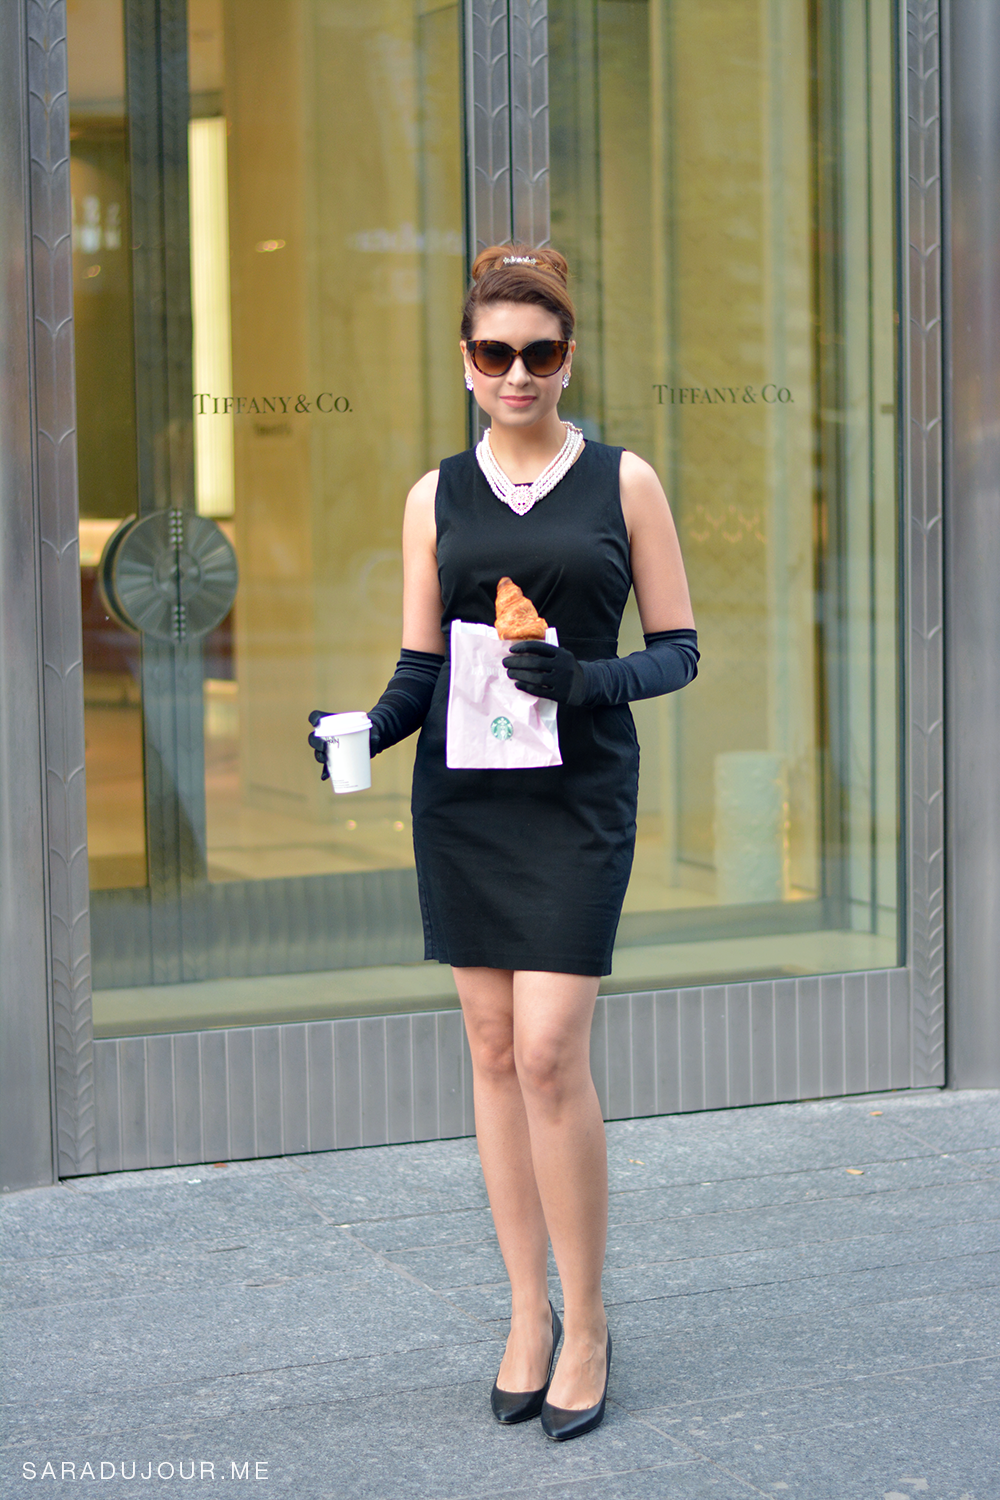 Audrey Hepburn (Holly Golightly) Breakfast at Tiffany's Halloween Costume | Sara du Jour